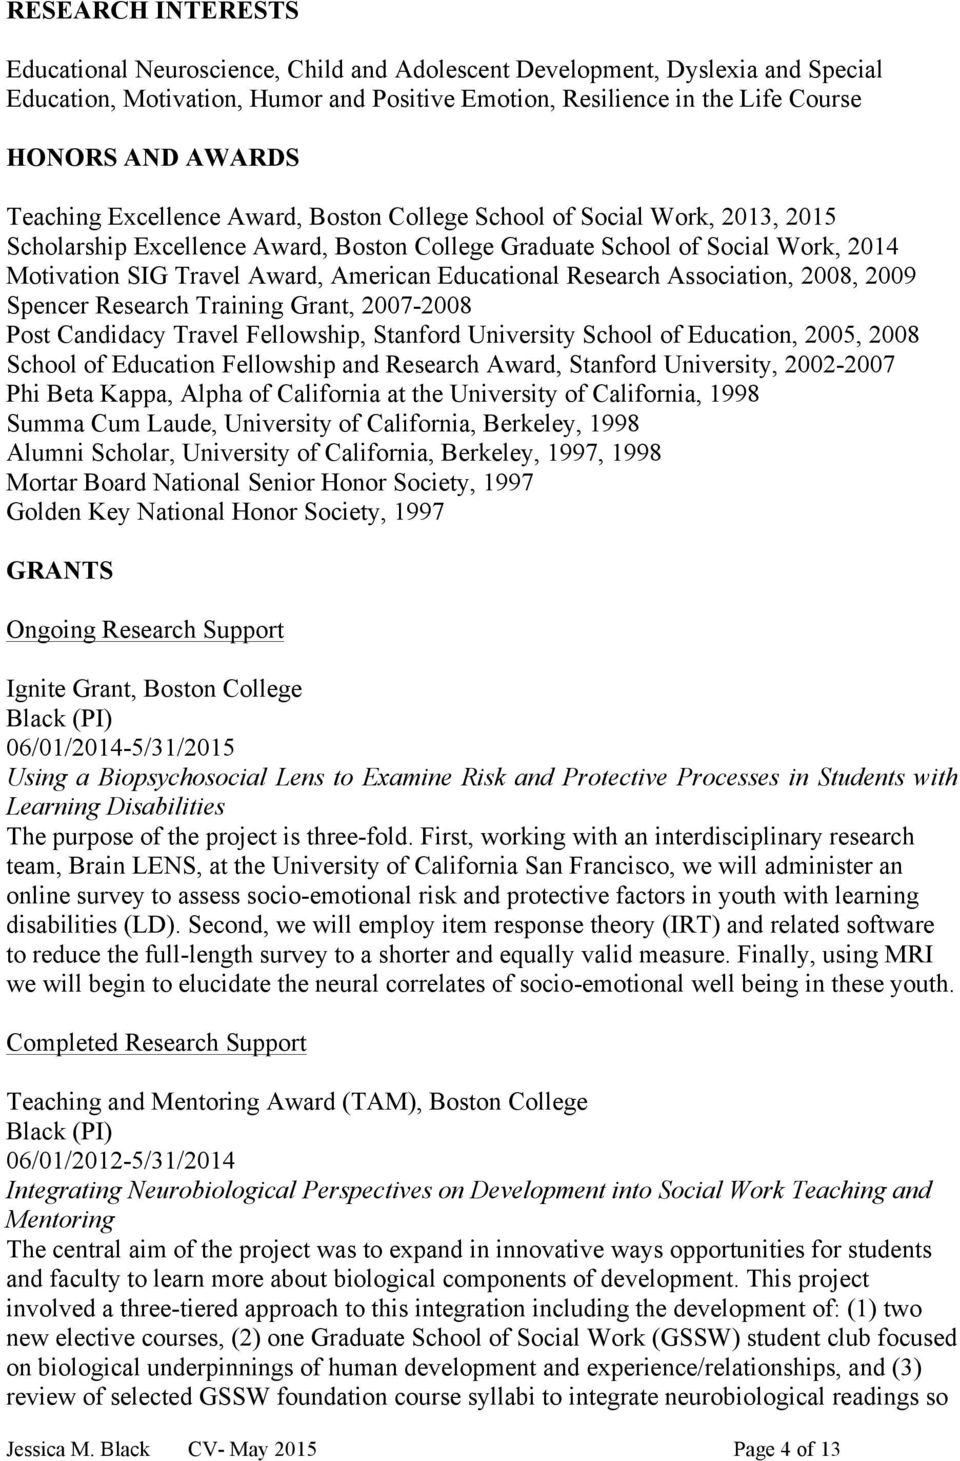 Educational Research Association, 2008, 2009 Spencer Research Training Grant, 2007-2008 Post Candidacy Travel Fellowship, Stanford University School of Education, 2005, 2008 School of Education